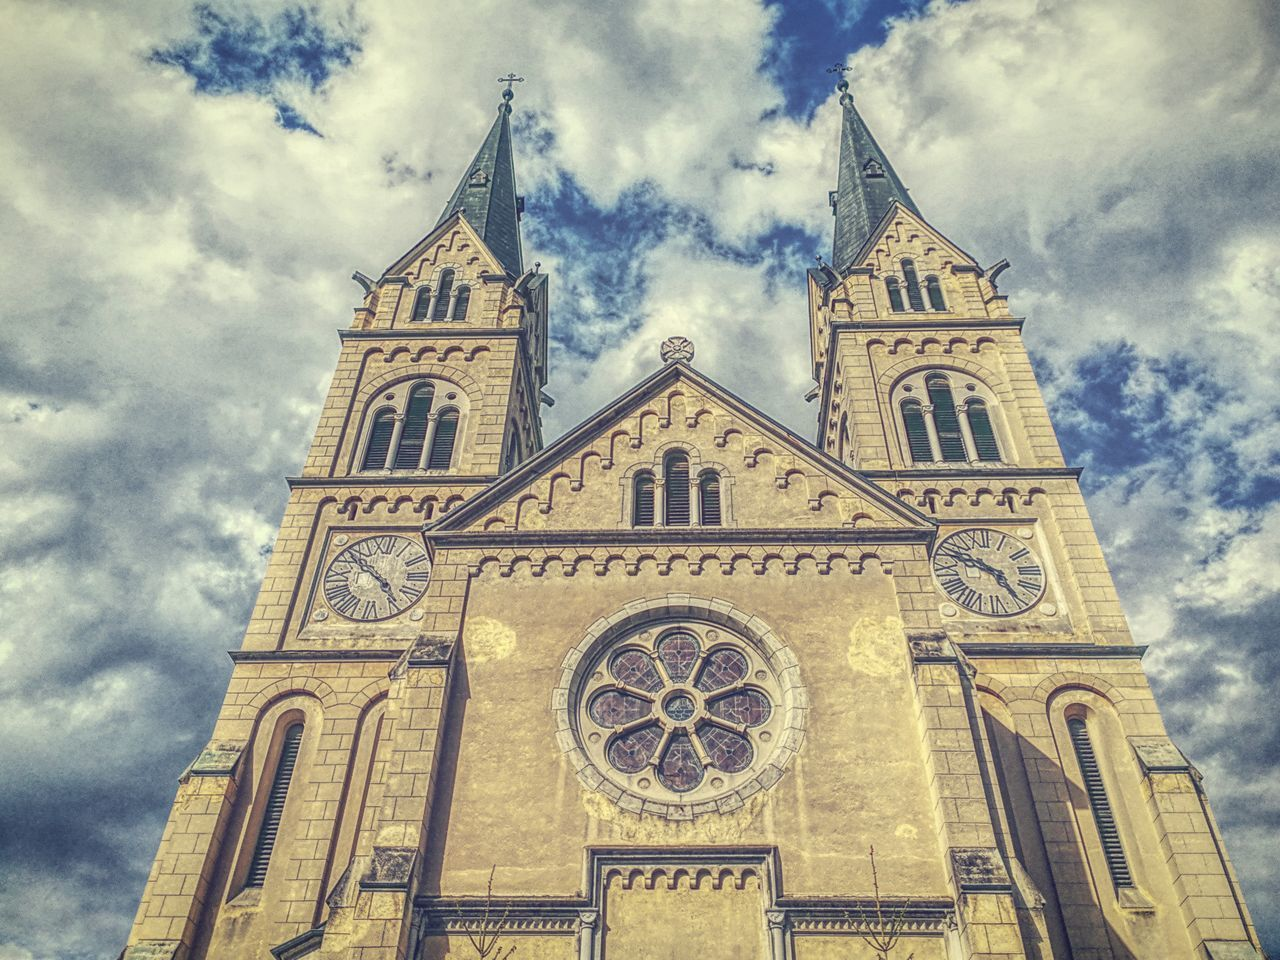 Low Angle View Cloud - Sky Religion Architecture Place Of Worship Spirituality Rose Window Built Structure Sky Building Exterior Outdoors History My Unique Style Getting Inspired Outdoor Photography The Great Outdoors - 2017 EyeEm Awards Eye4photography  EyEmNewHere The Architect - 2017 EyeEm Awards The Photojournalist - 2017 EyeEm Awards Capture The Moment Nature Something Different EyeEm Best Shots - Nature EyeEm Gallery